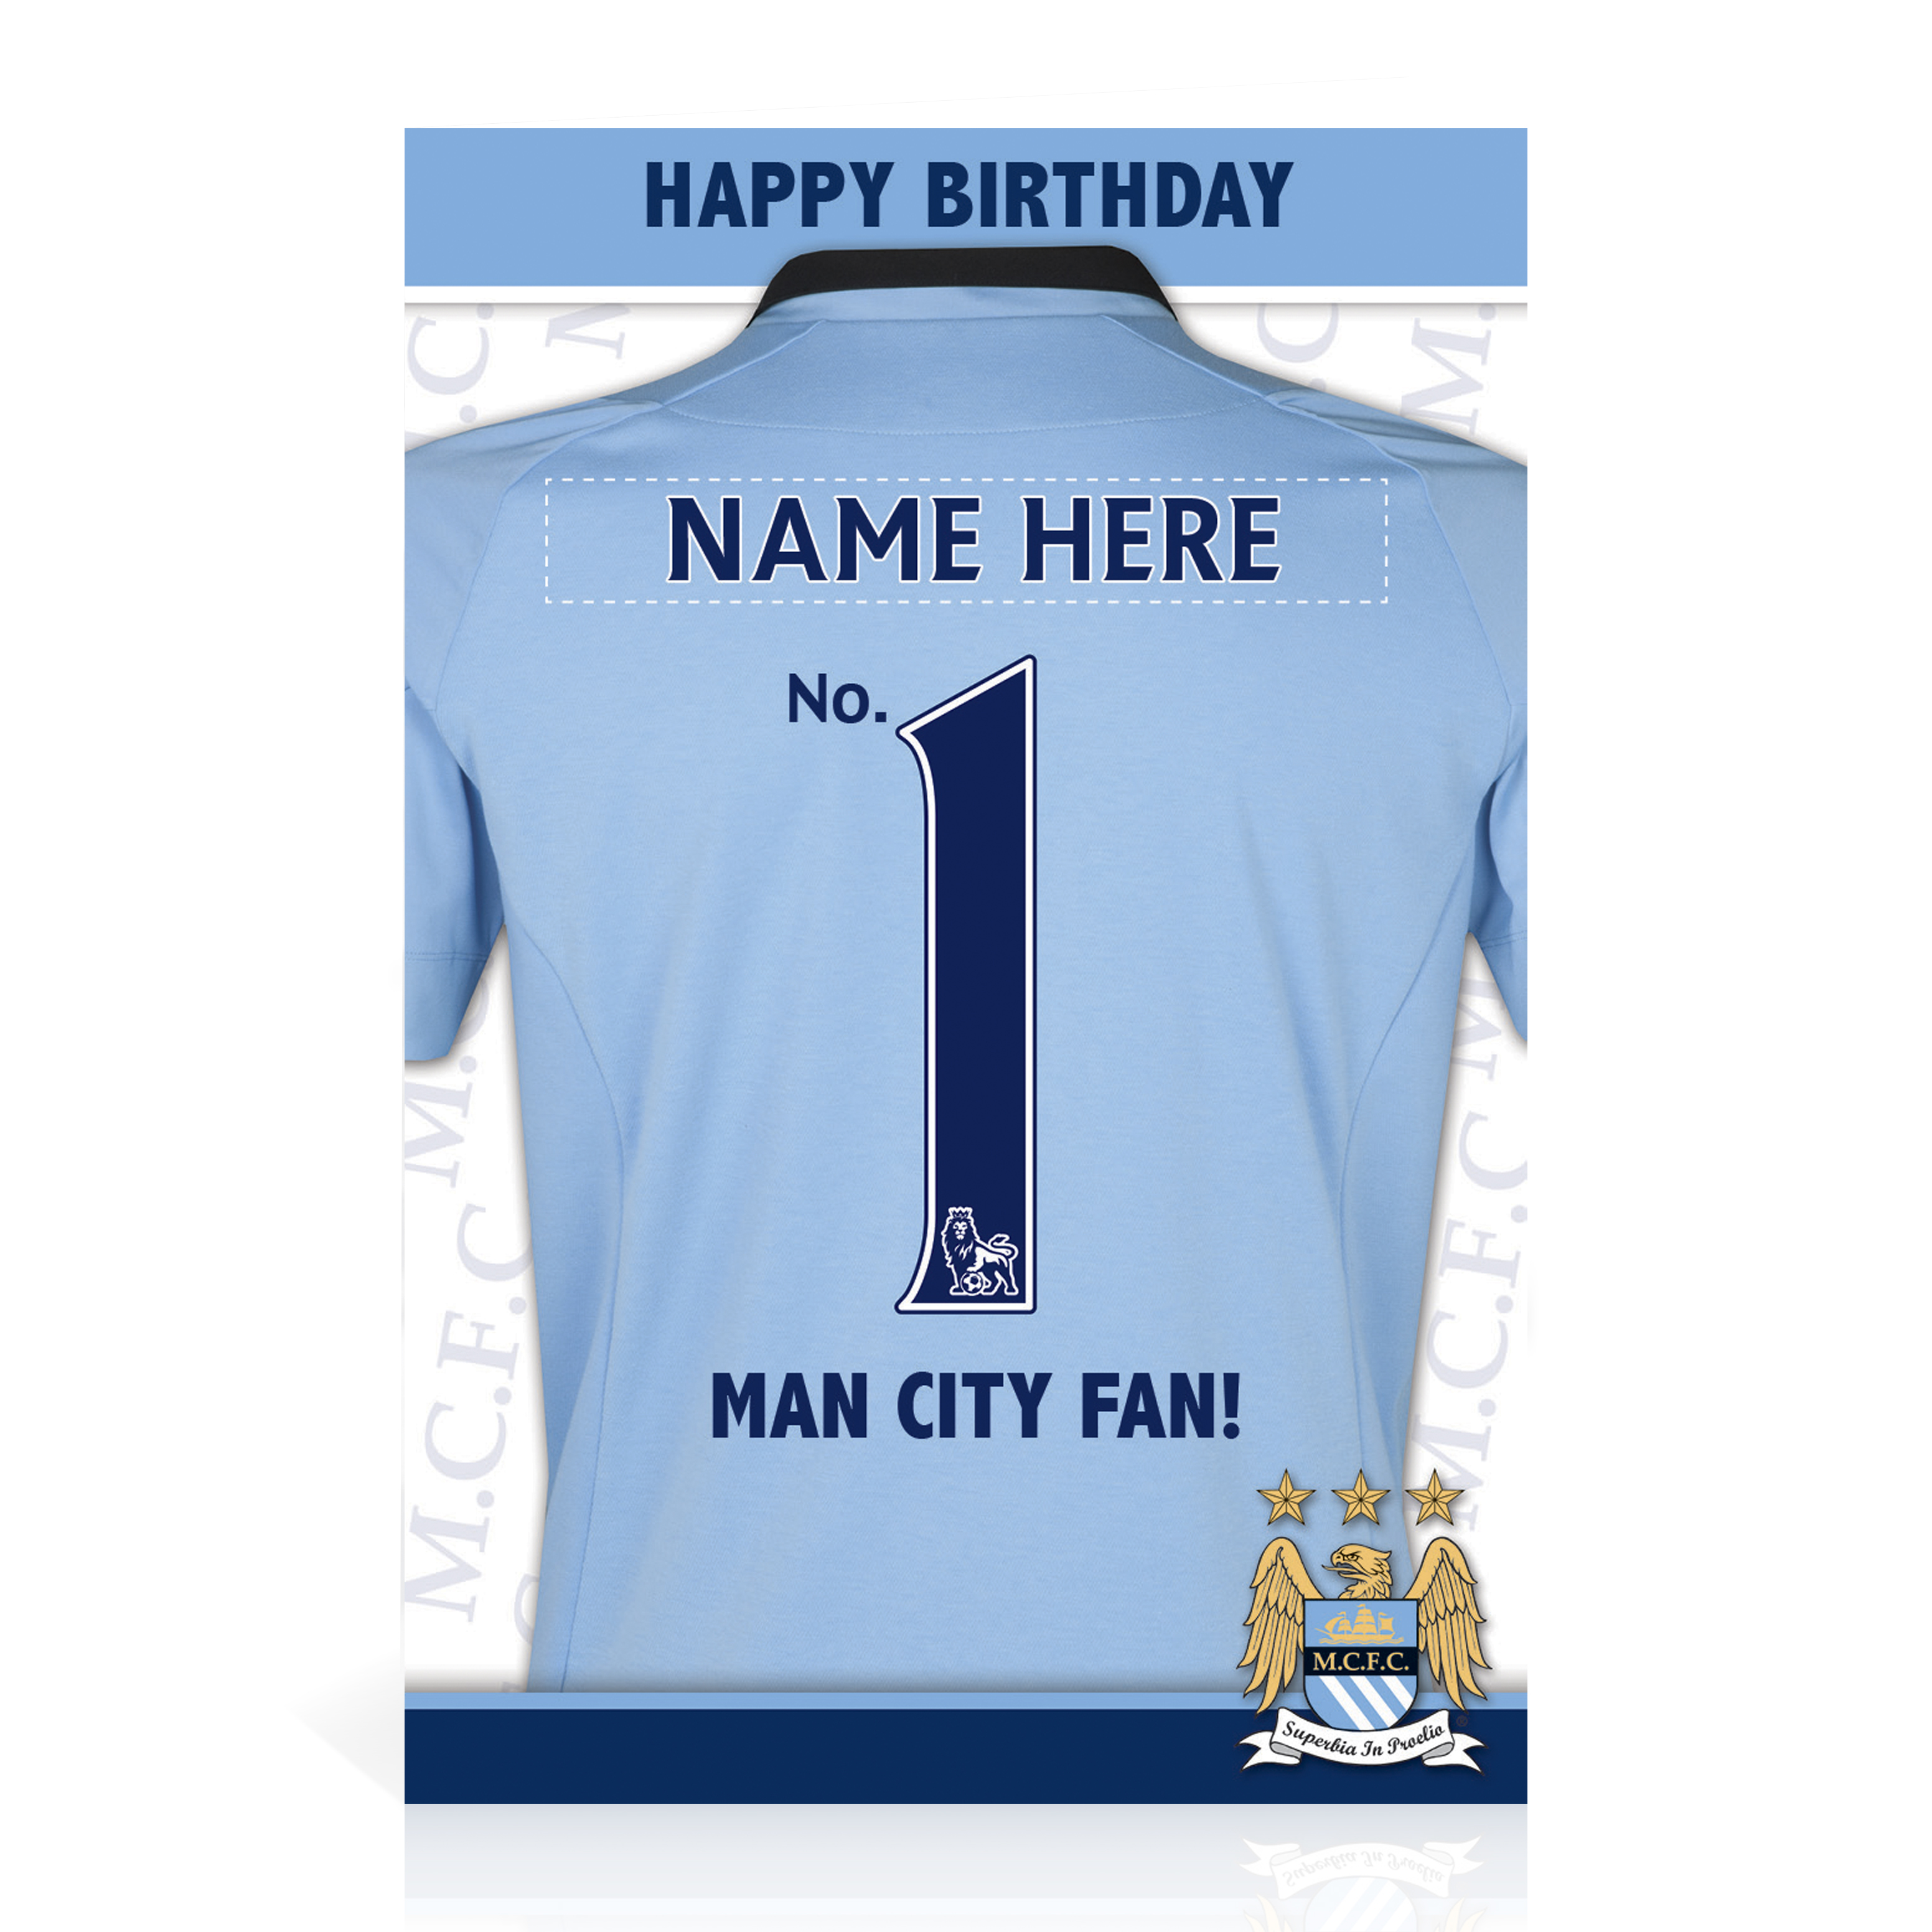 Manchester City Personalised Happy Birthday Card - No. 1 Fan